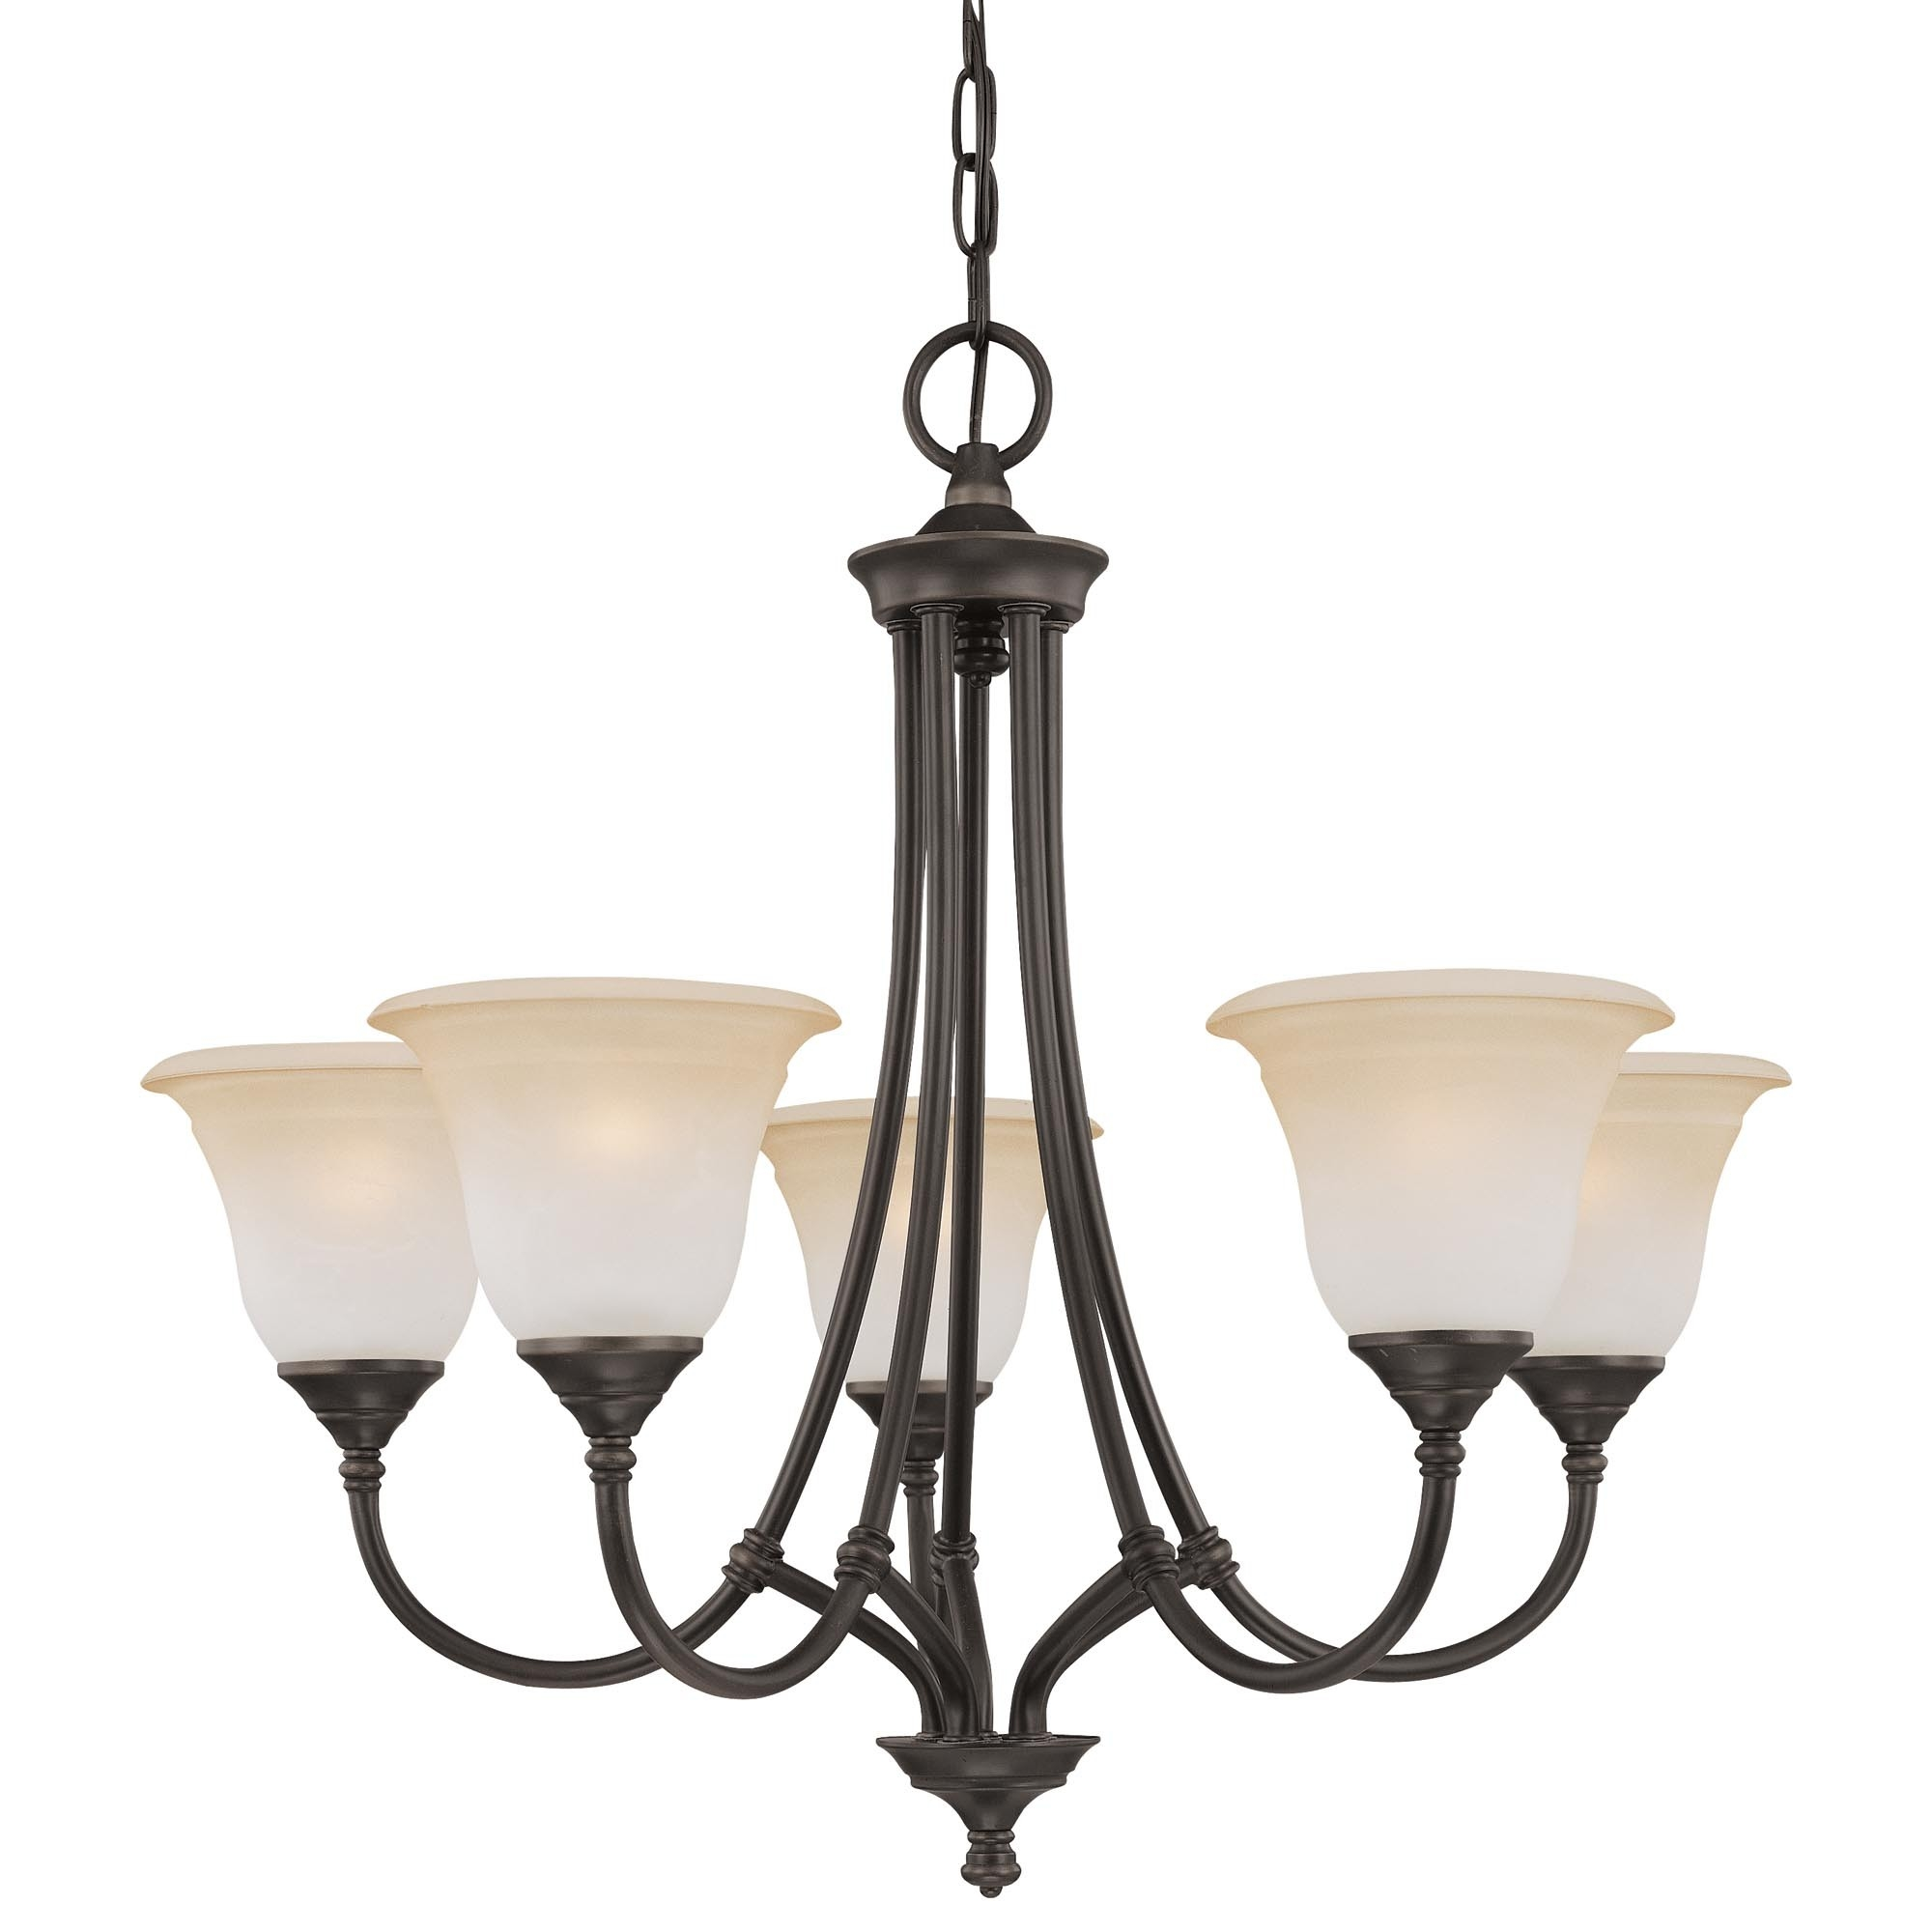 Harmony 5 Light Chandelier In Aged Bronze Finish Sl880162 Within Chandelier Lights (#11 of 12)